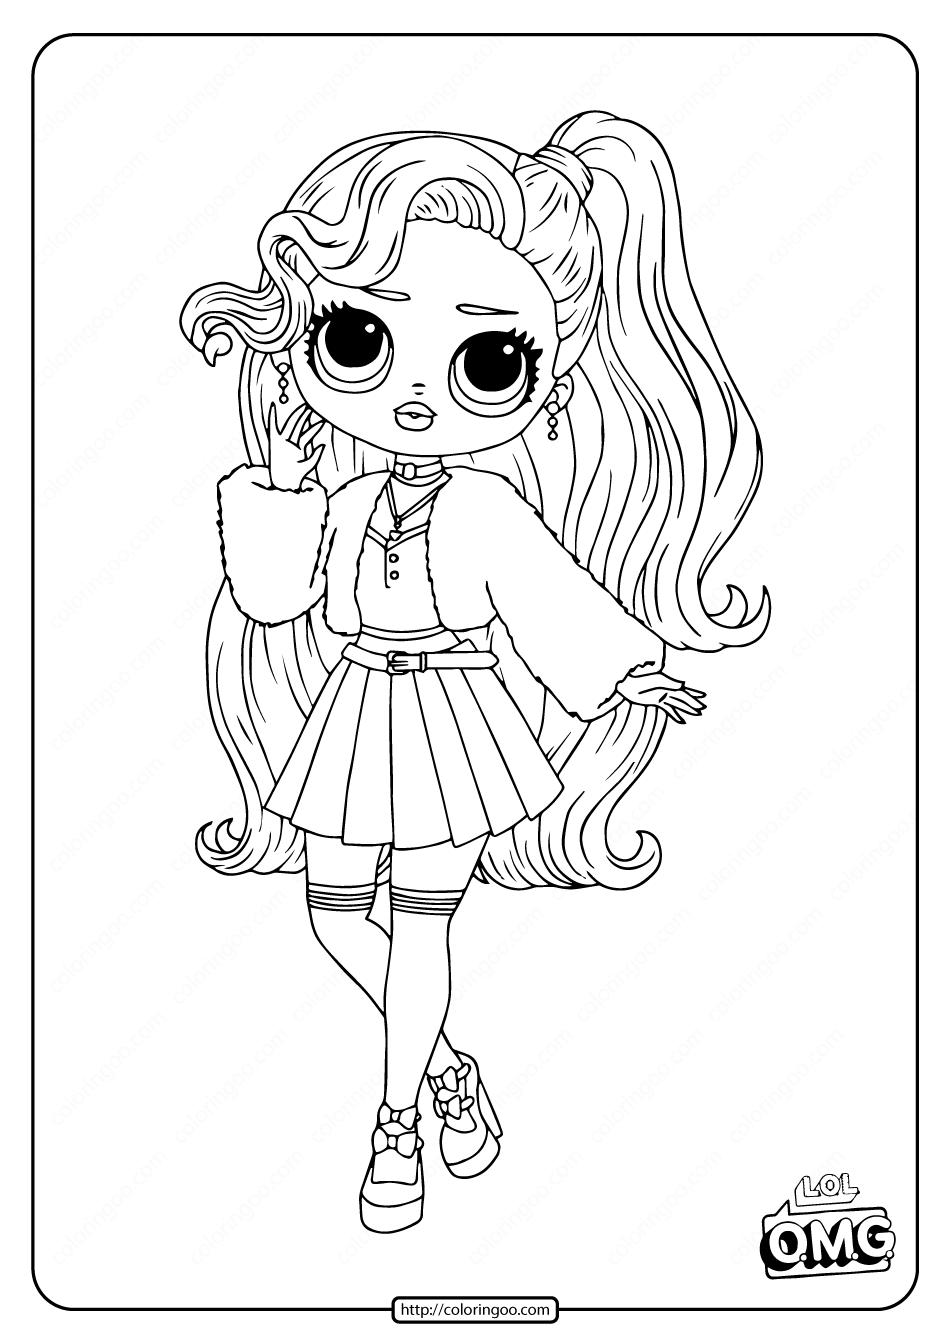 Lol Surprise Omg Pink Baby Coloring Page Baby Coloring Pages Unicorn Coloring Pages Cool Coloring Pages